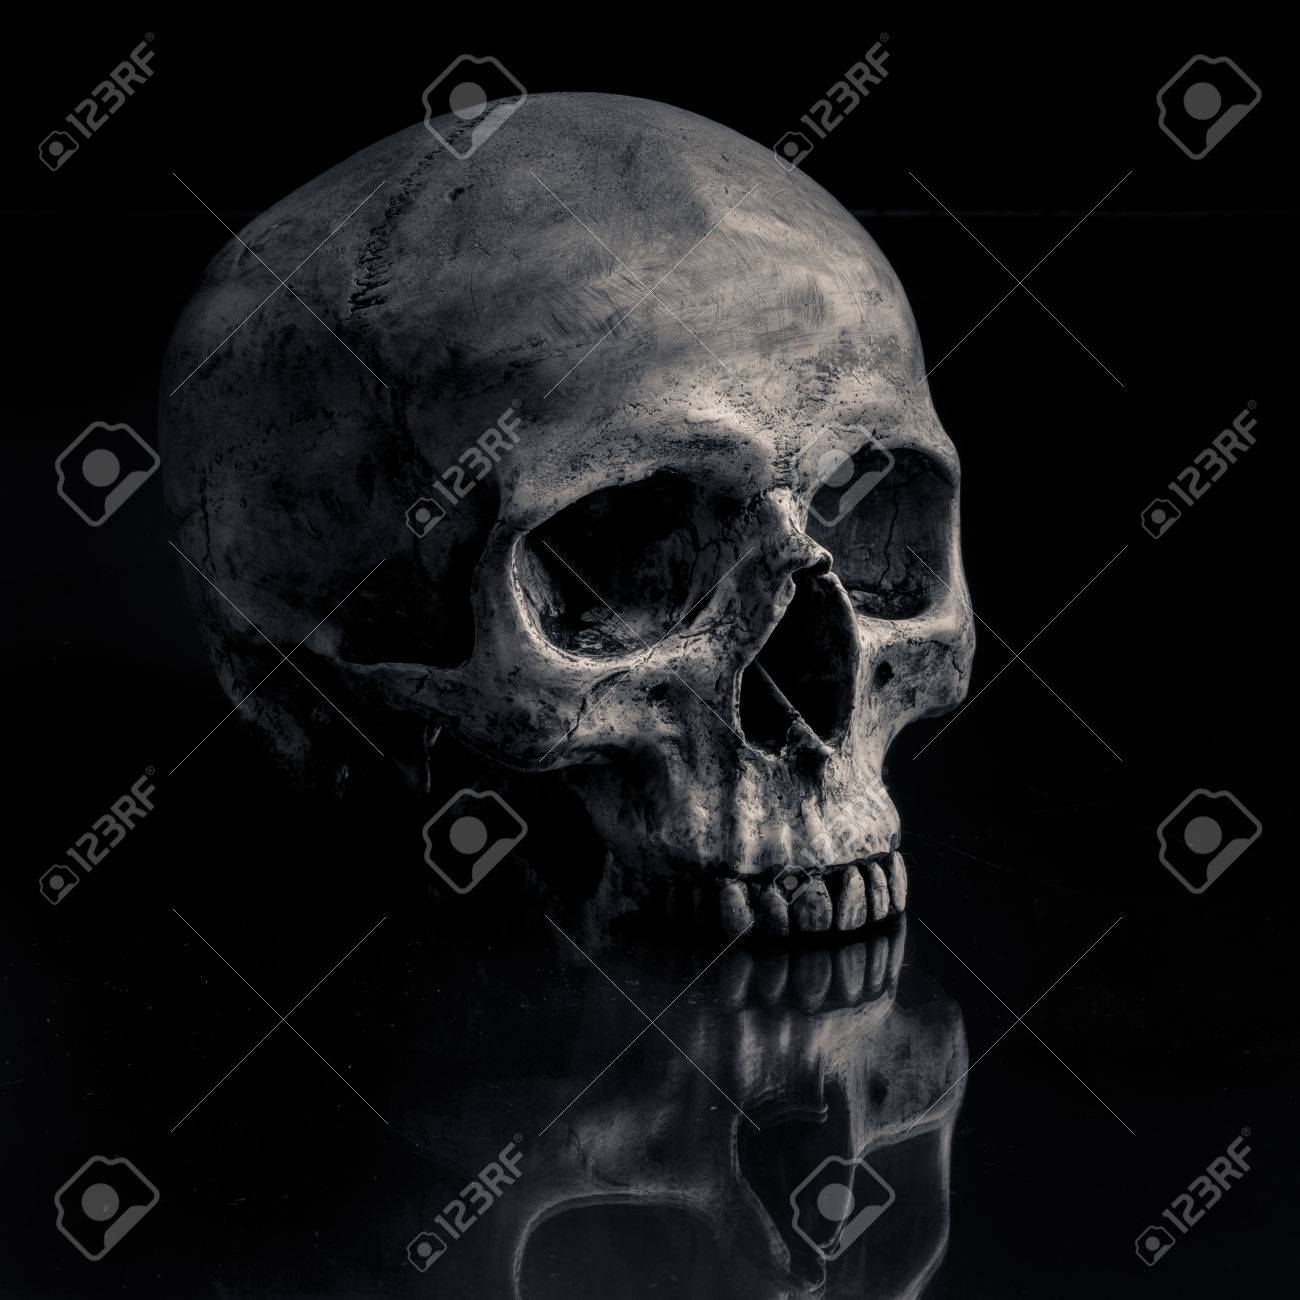 Sideview of human skull open mouth on isolated black background